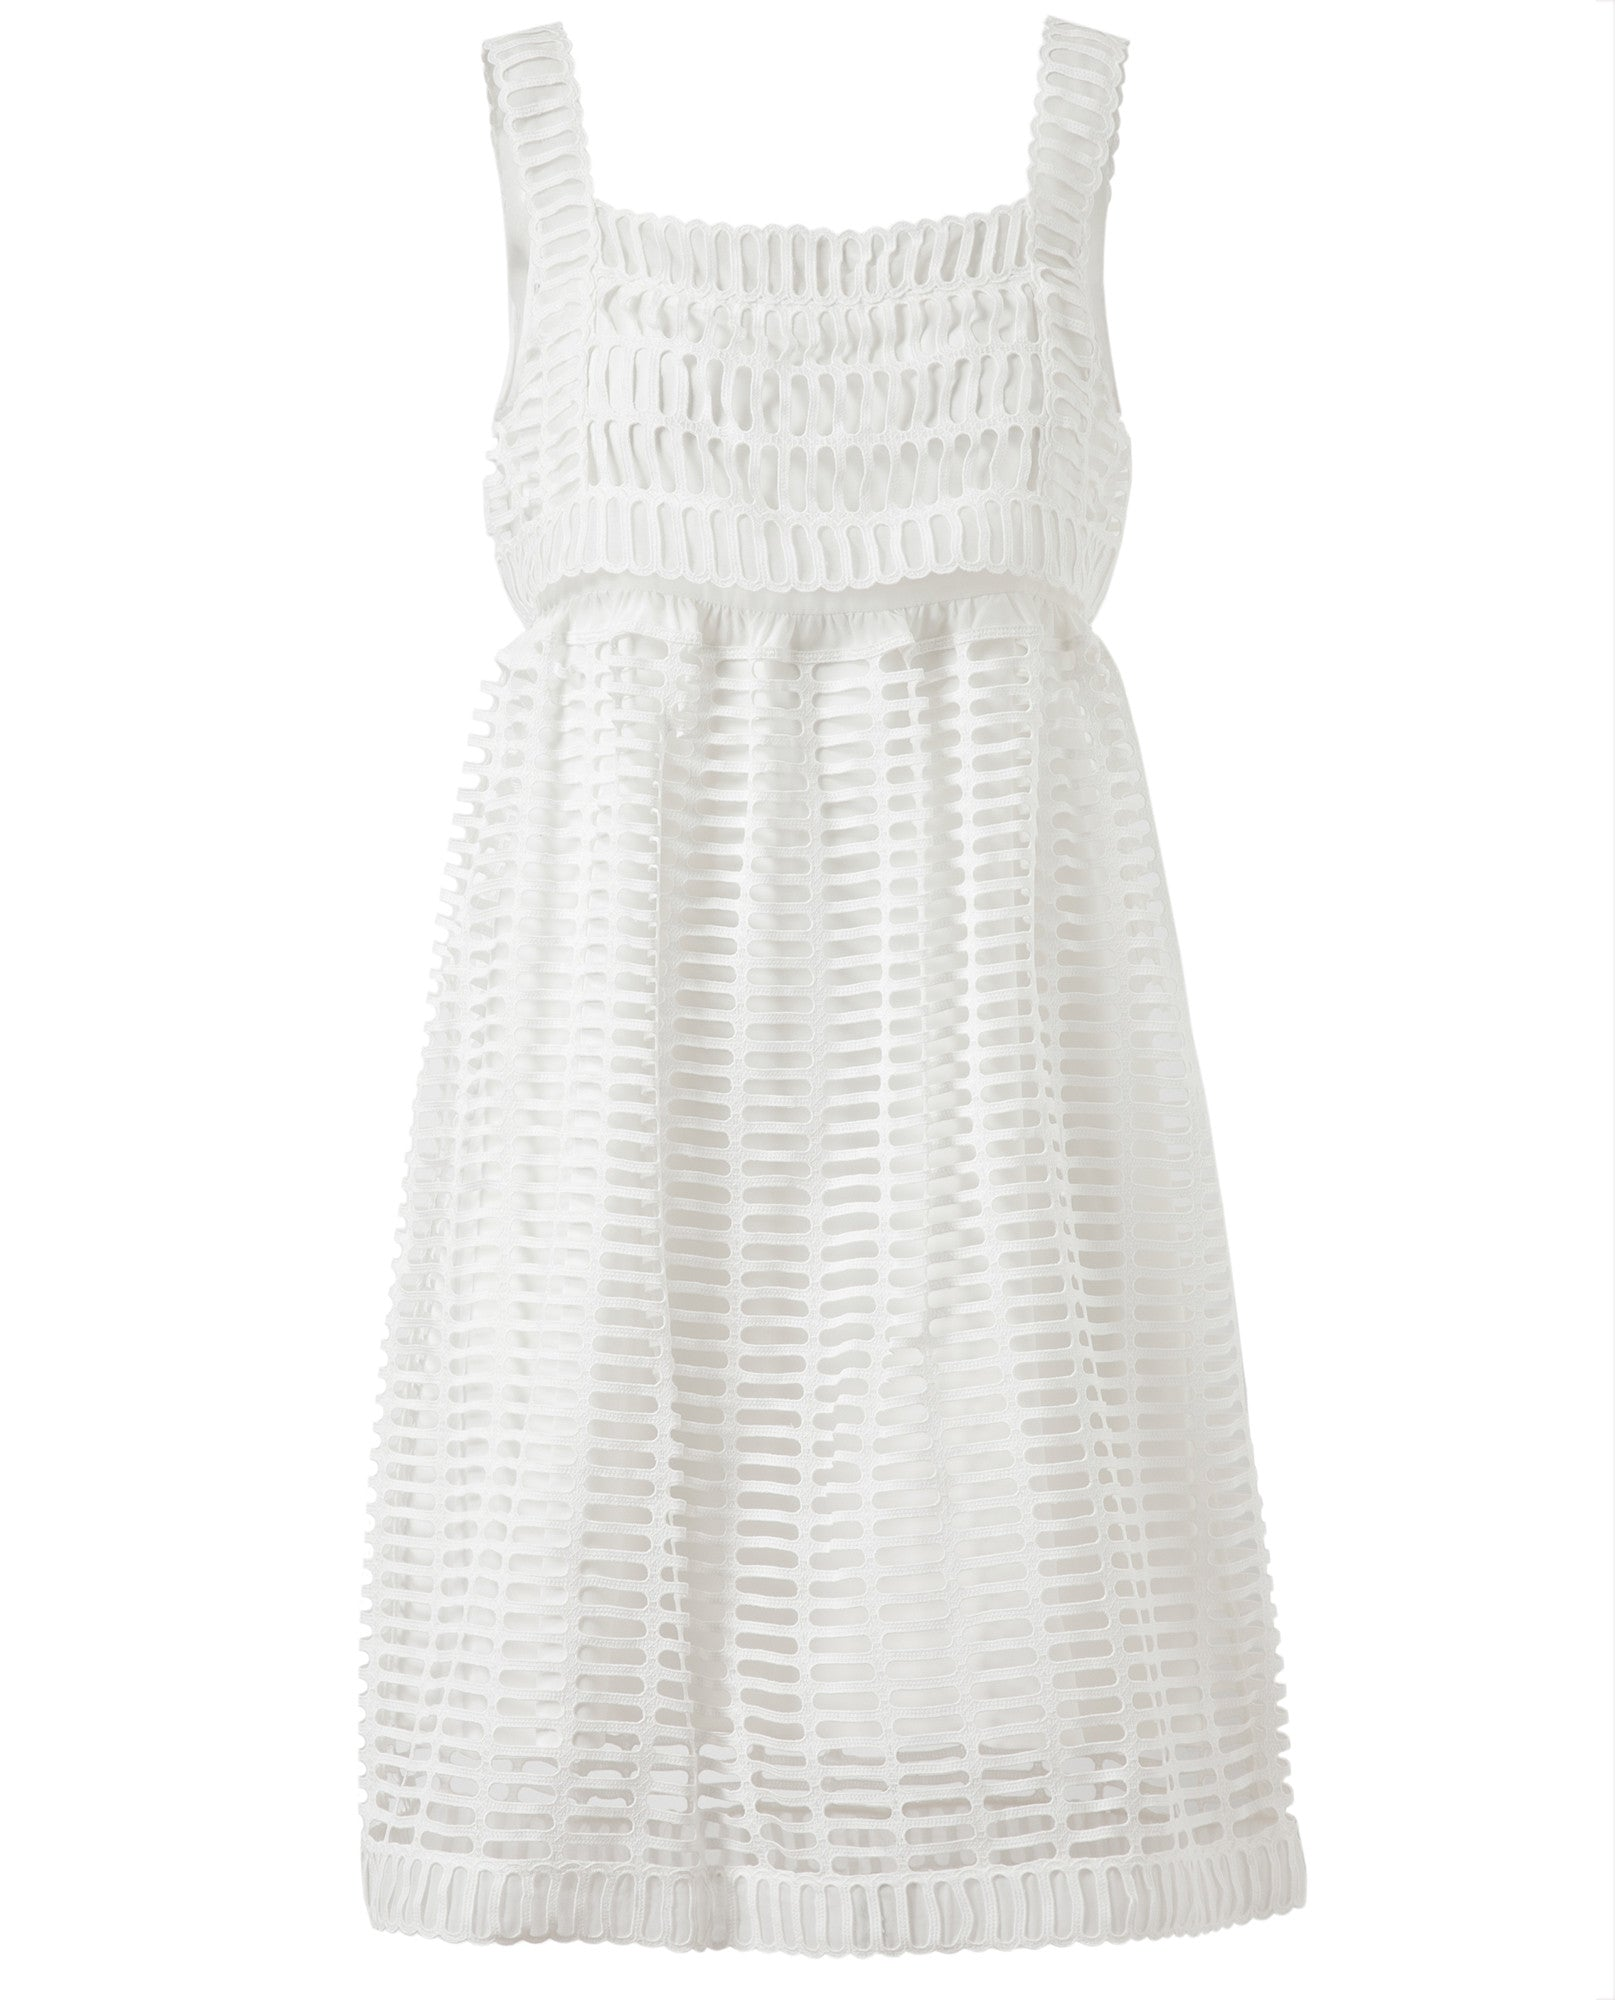 Cotton and Lace Dress